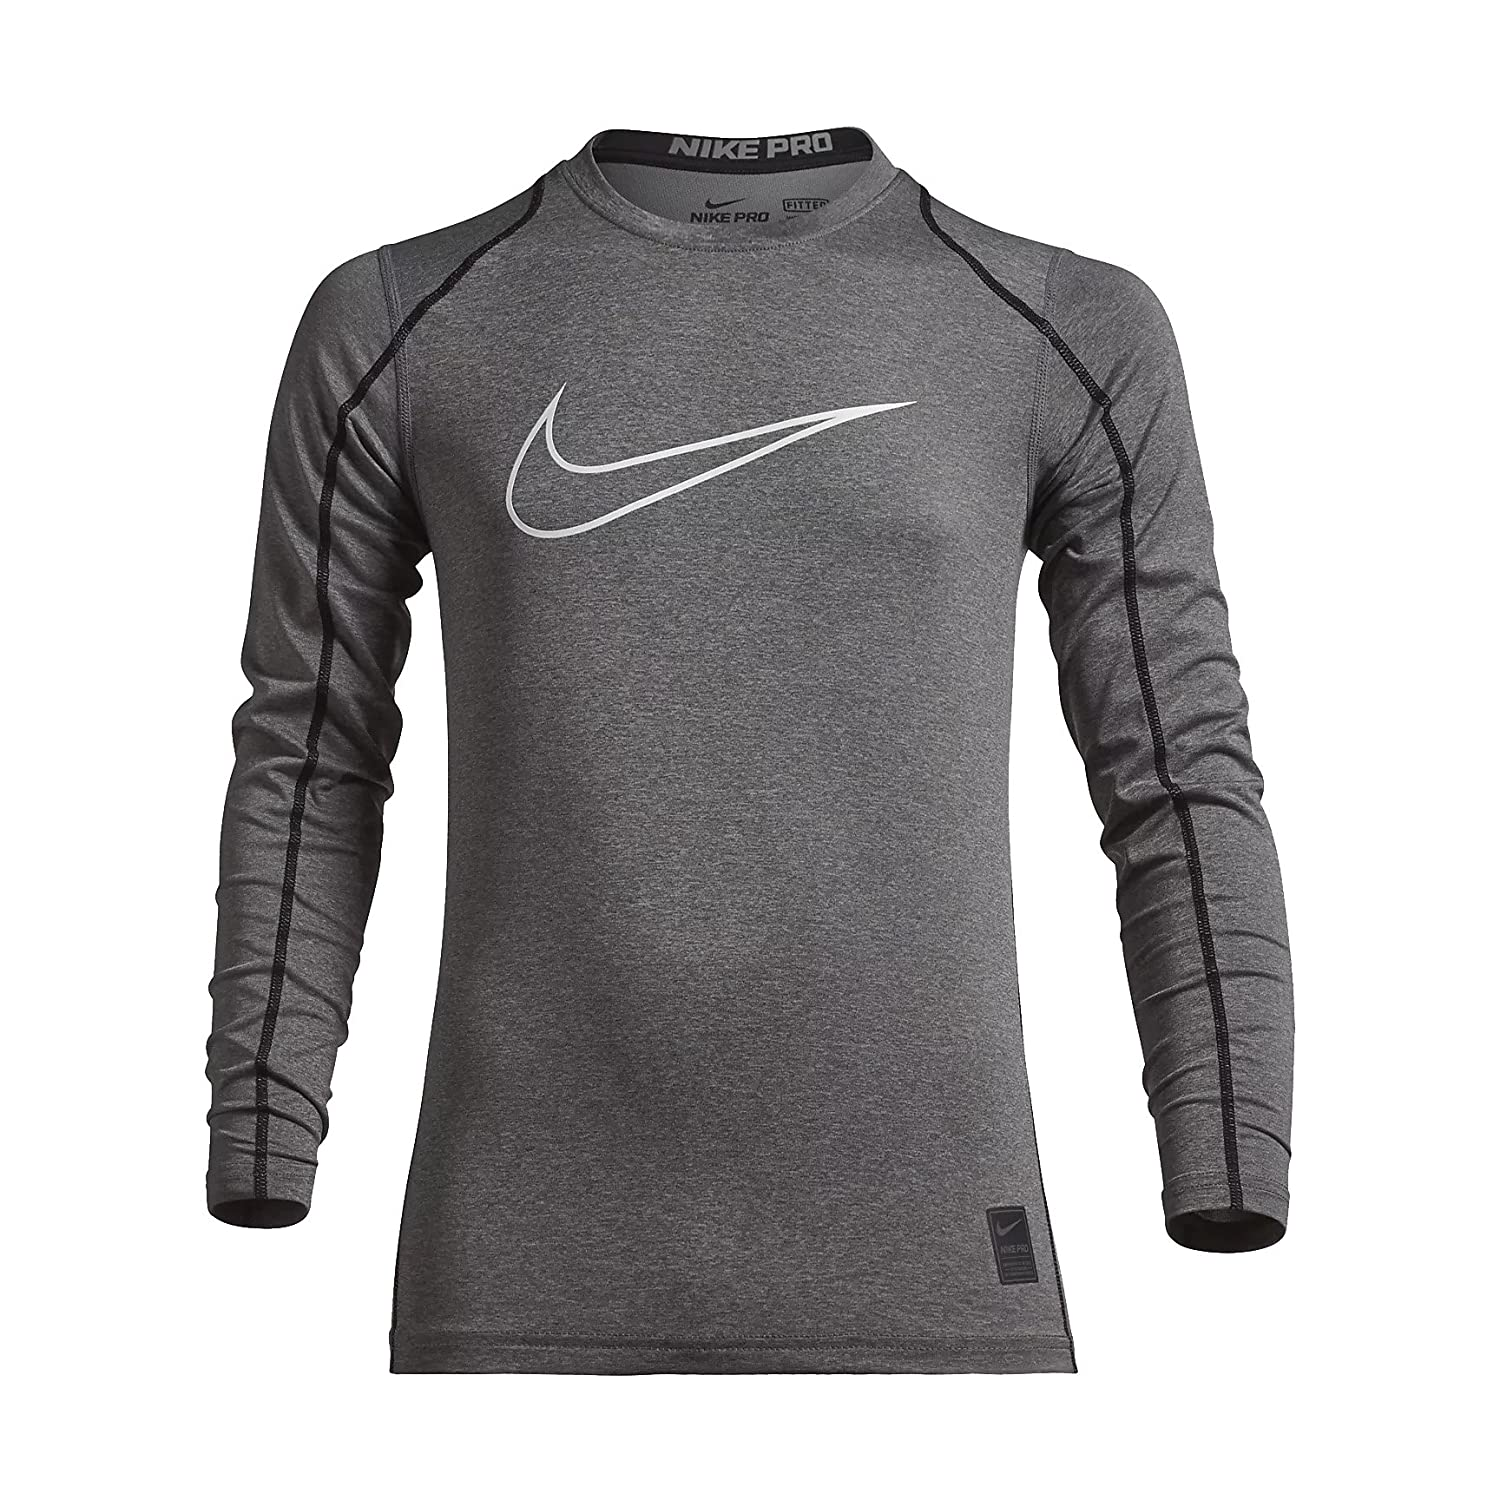 63d516d3 Nike Pro Cool fabric provides a sweat-wicking baselayer to help you feel  cool. Stretch-mesh back insert for ventilation. Flat seams move smoothly  against ...